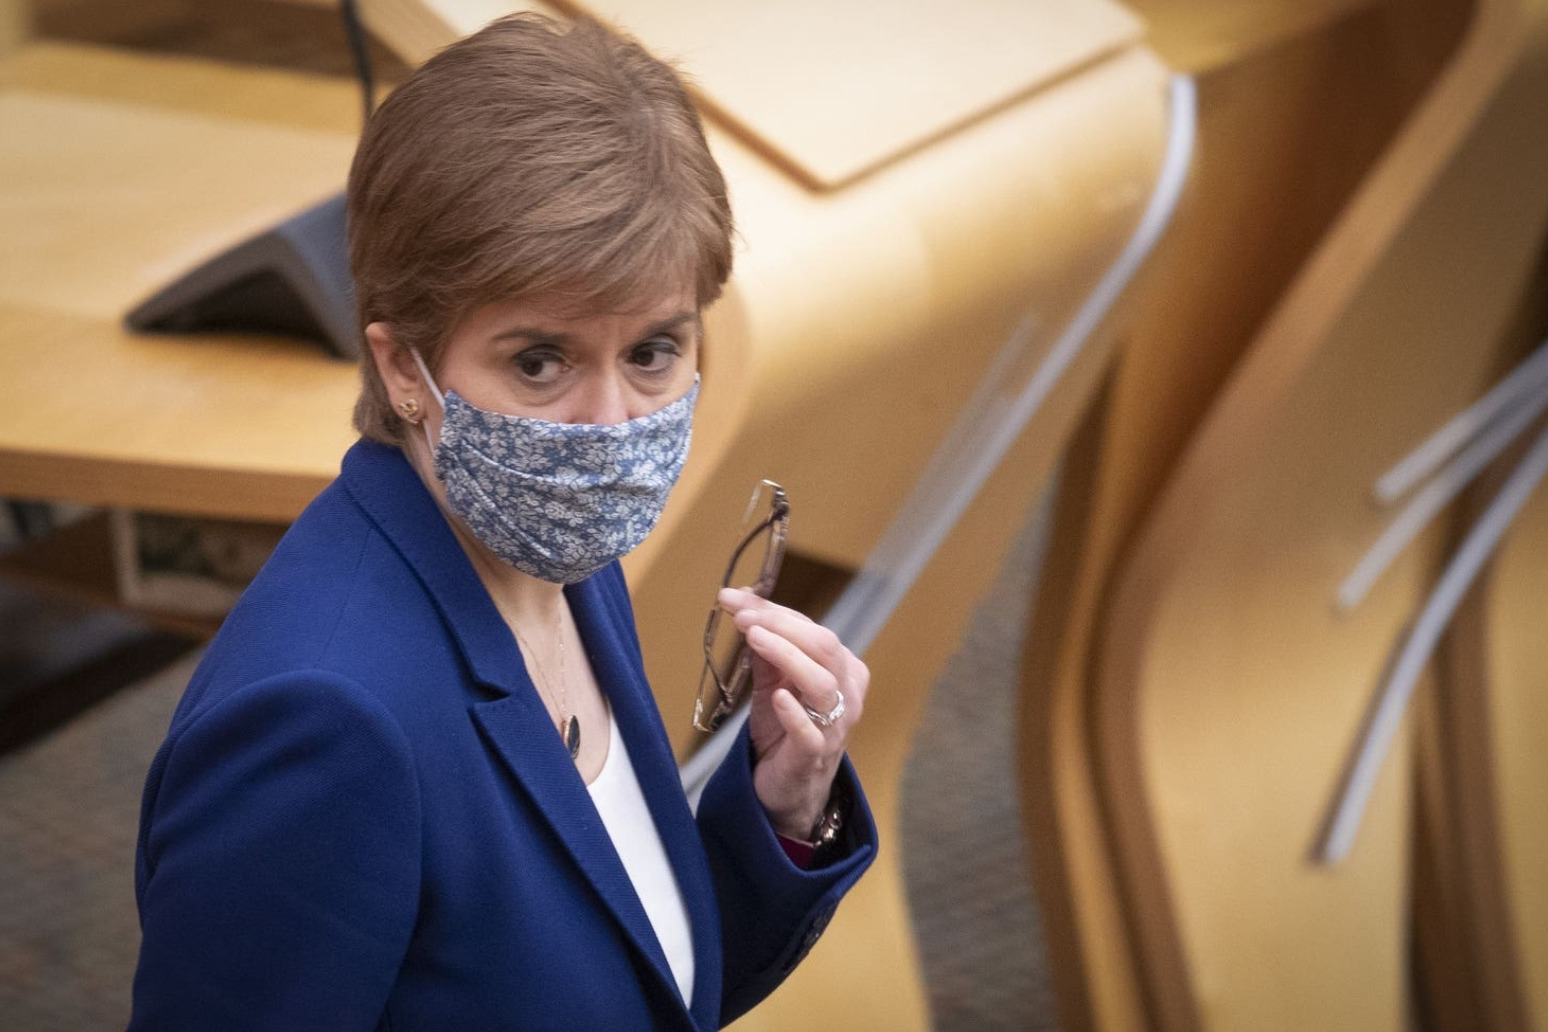 Prime Minister's visit to Scotland not essential – Sturgeon